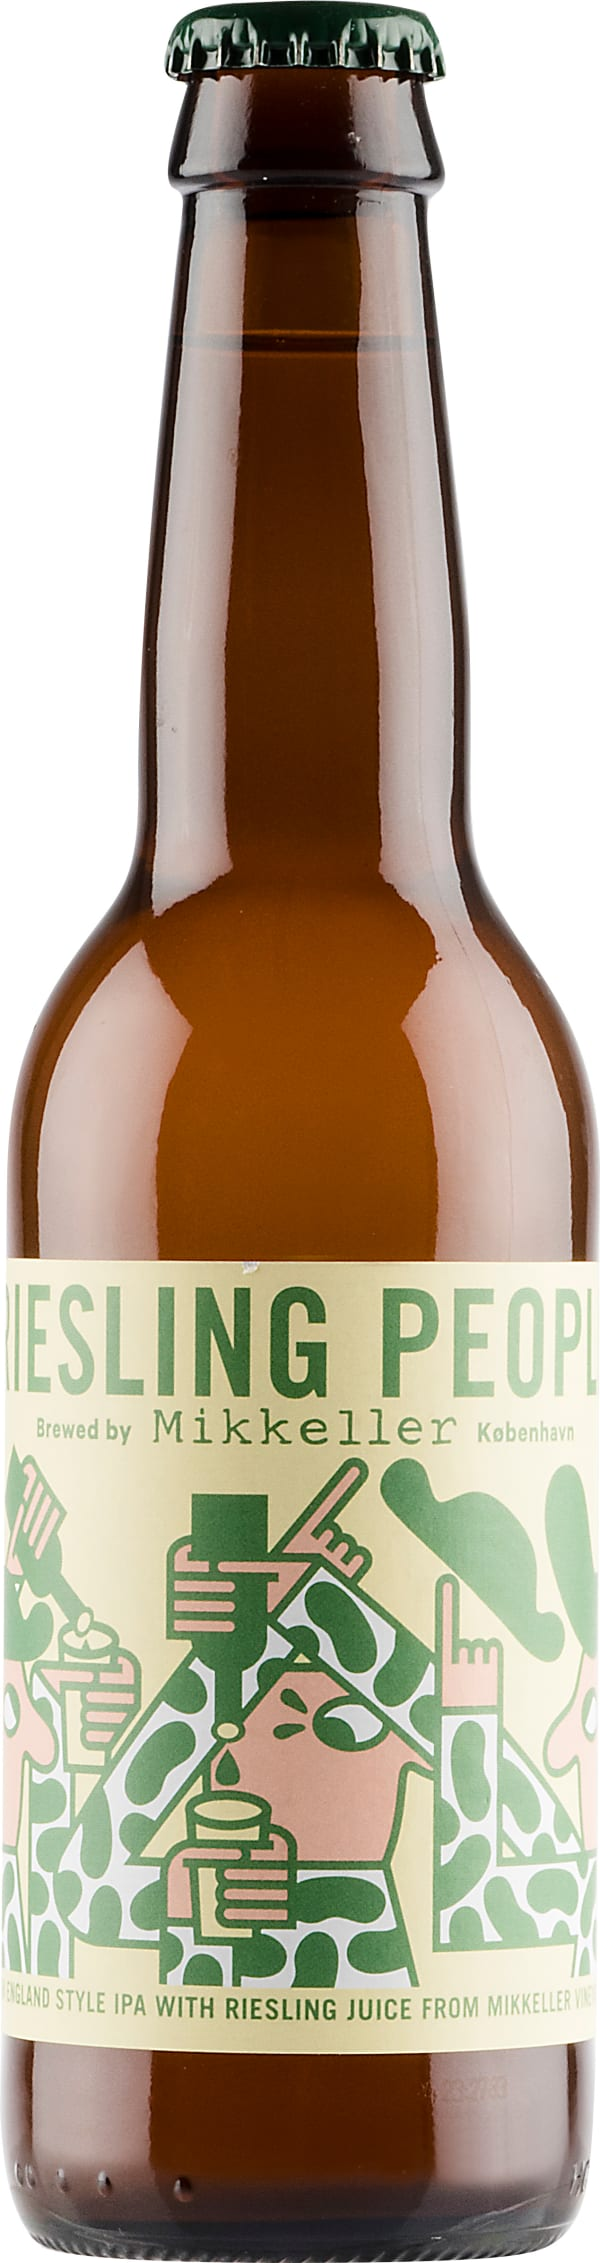 Mikkeller Riesling People New England Style IPA